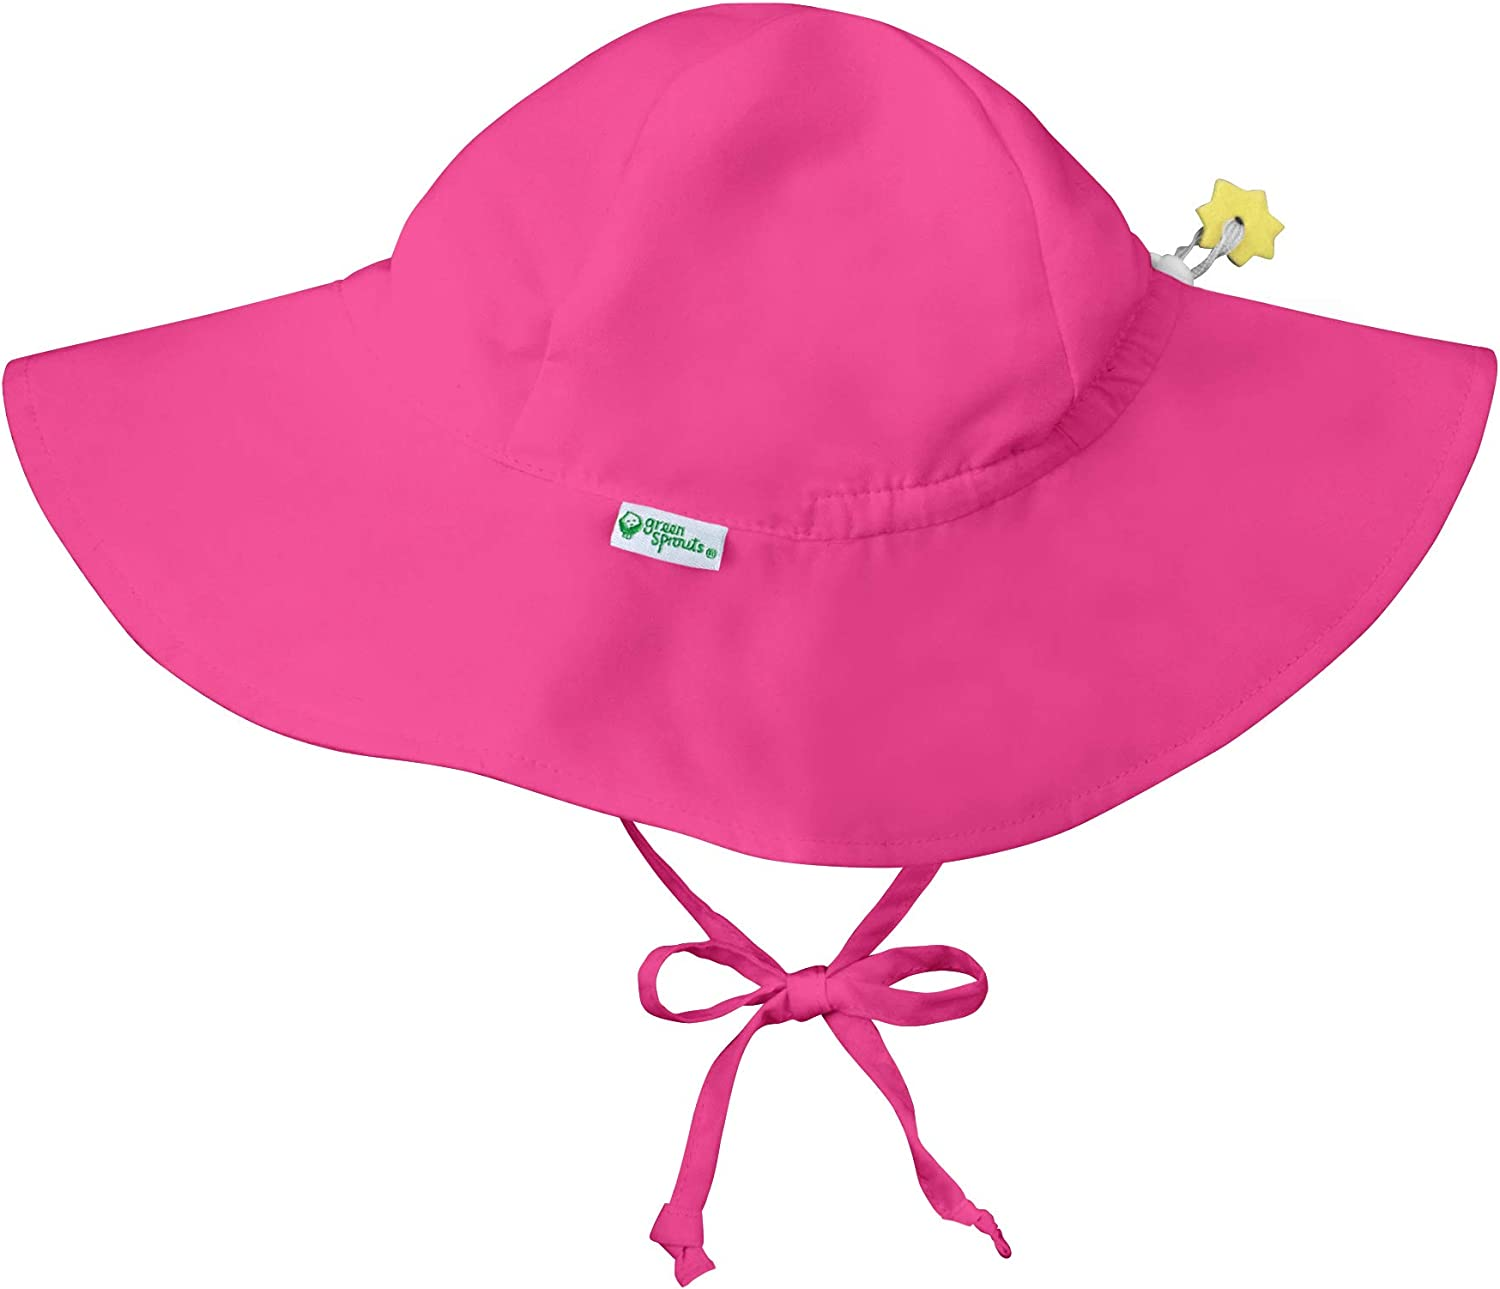 Neck Eyes Flap Sun Protection Hat UPF 50+ All-Day Sun Protection for Head I-Play